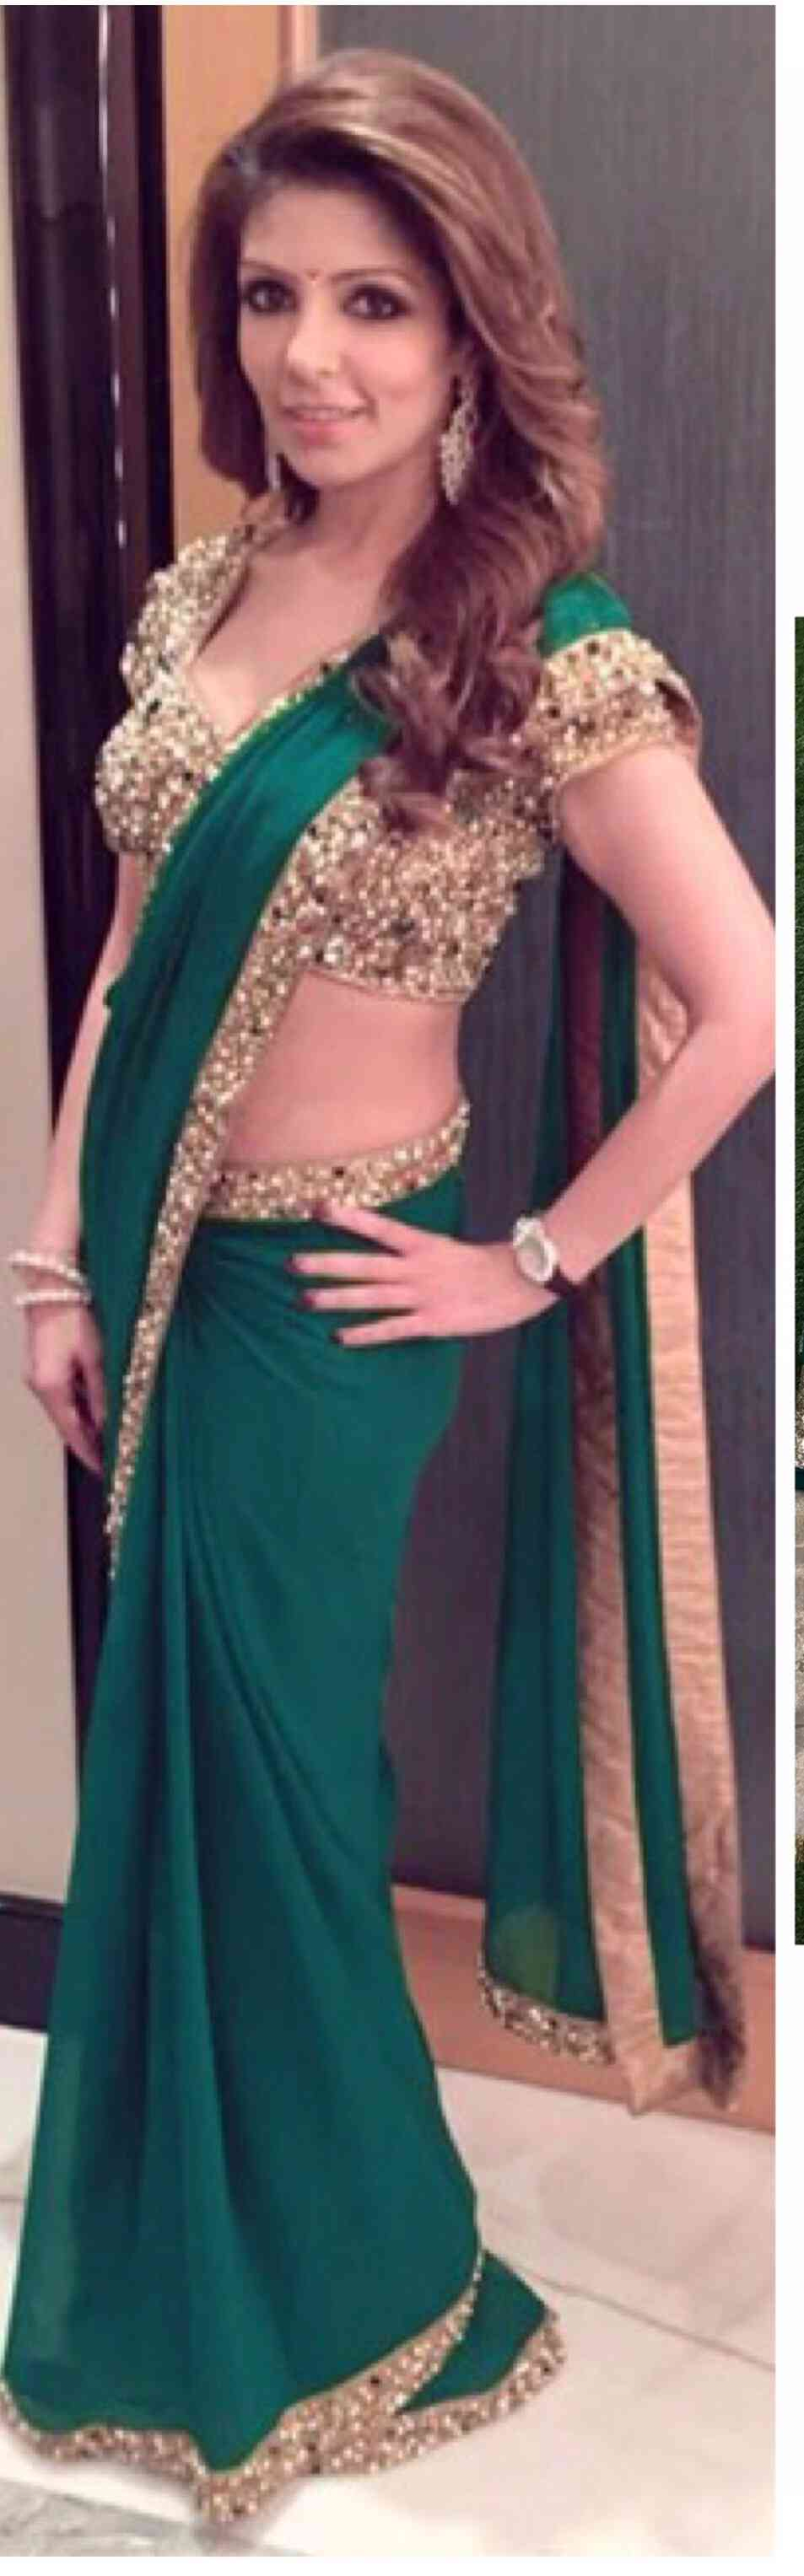 Green Colored Georgette With Sequence Lace Border Saree With Blouse - DVD1044I